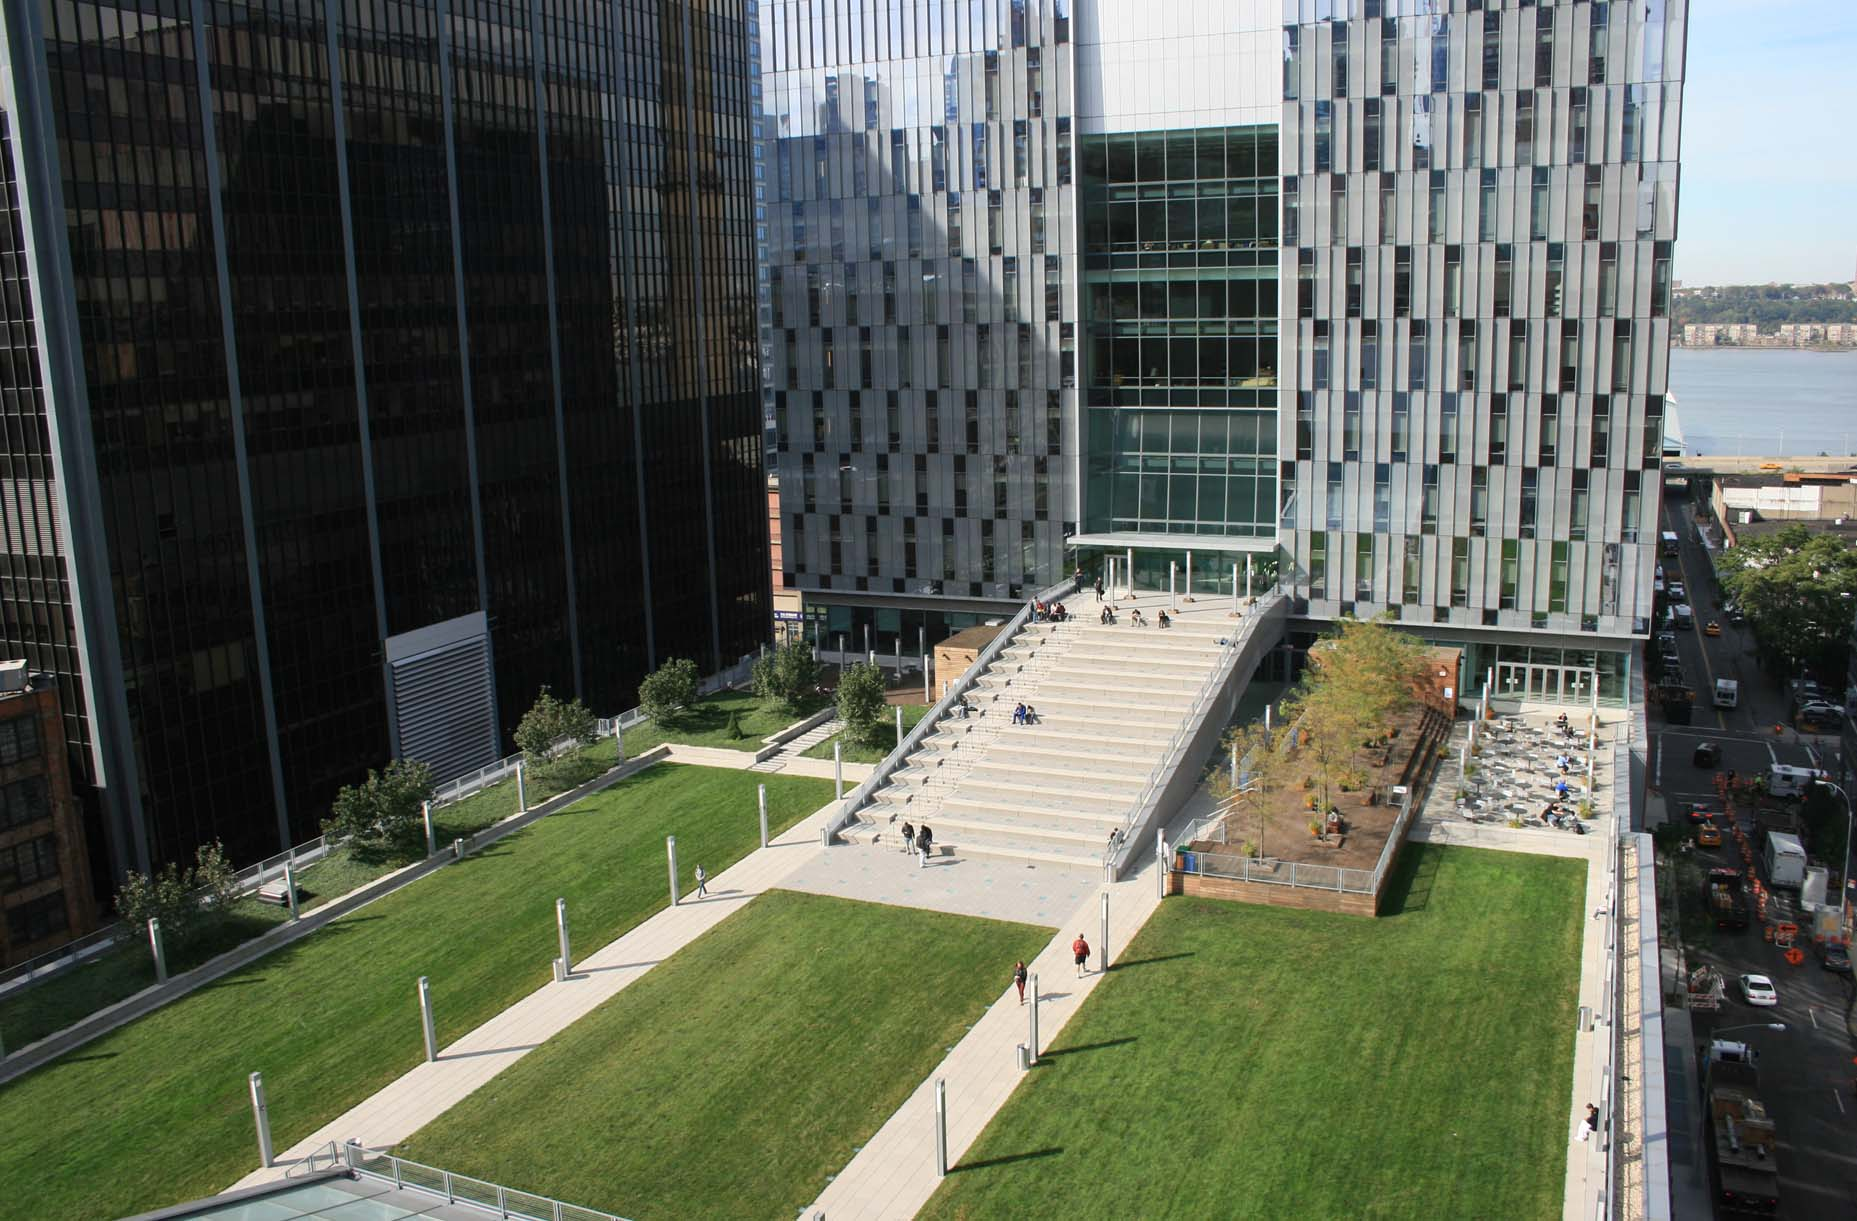 John Jay College green roof